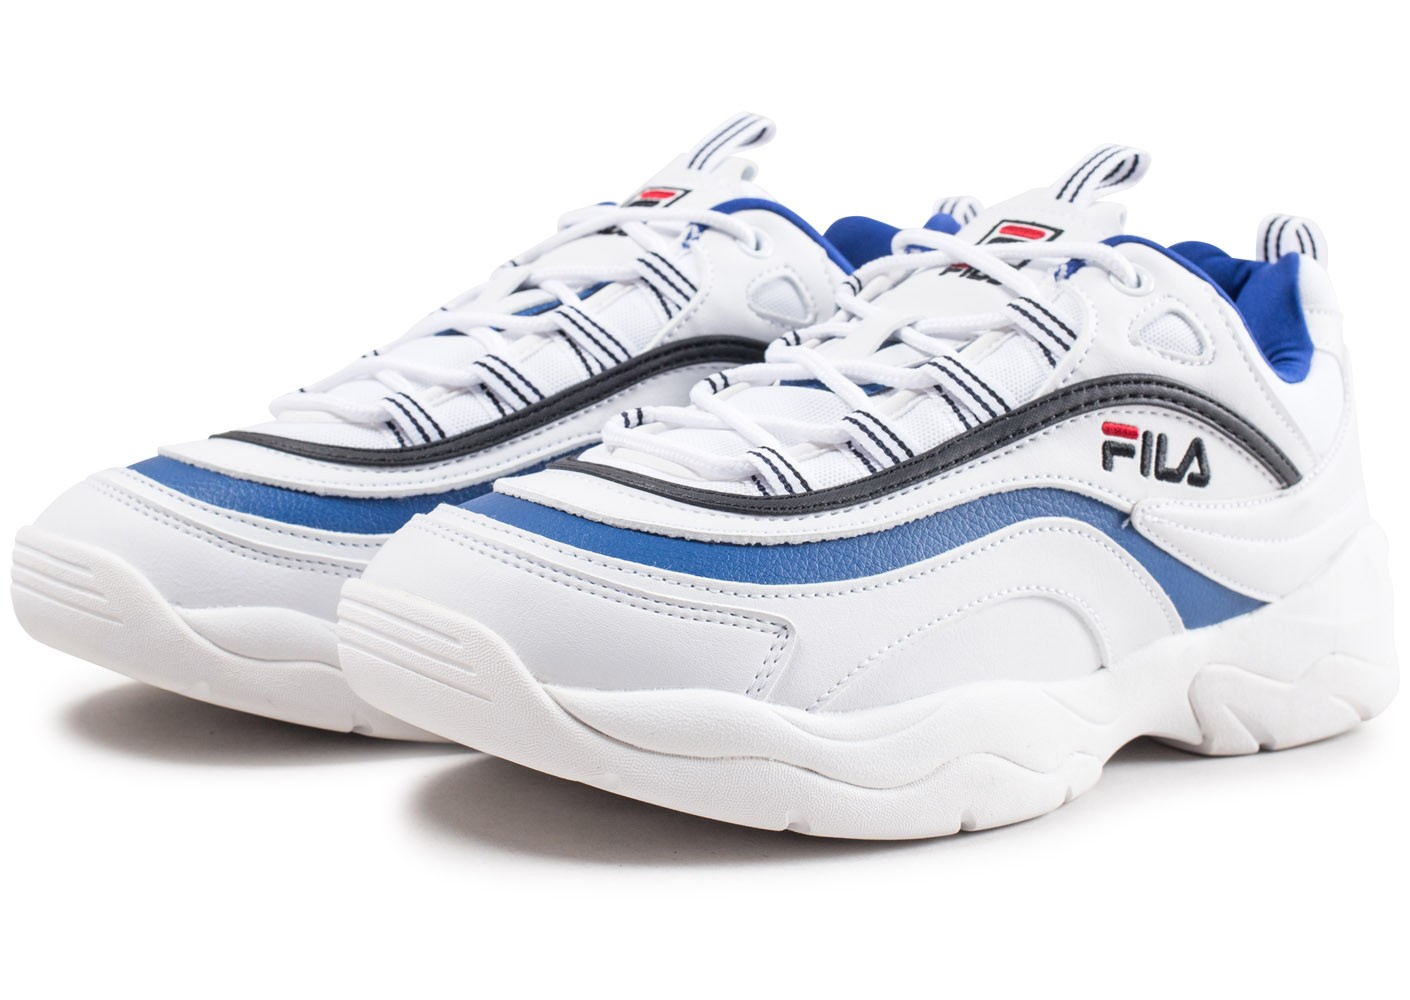 Homme Blanche Fila Ray Bleue Baskets Chausport Chaussures Et 3jqc4RL5A